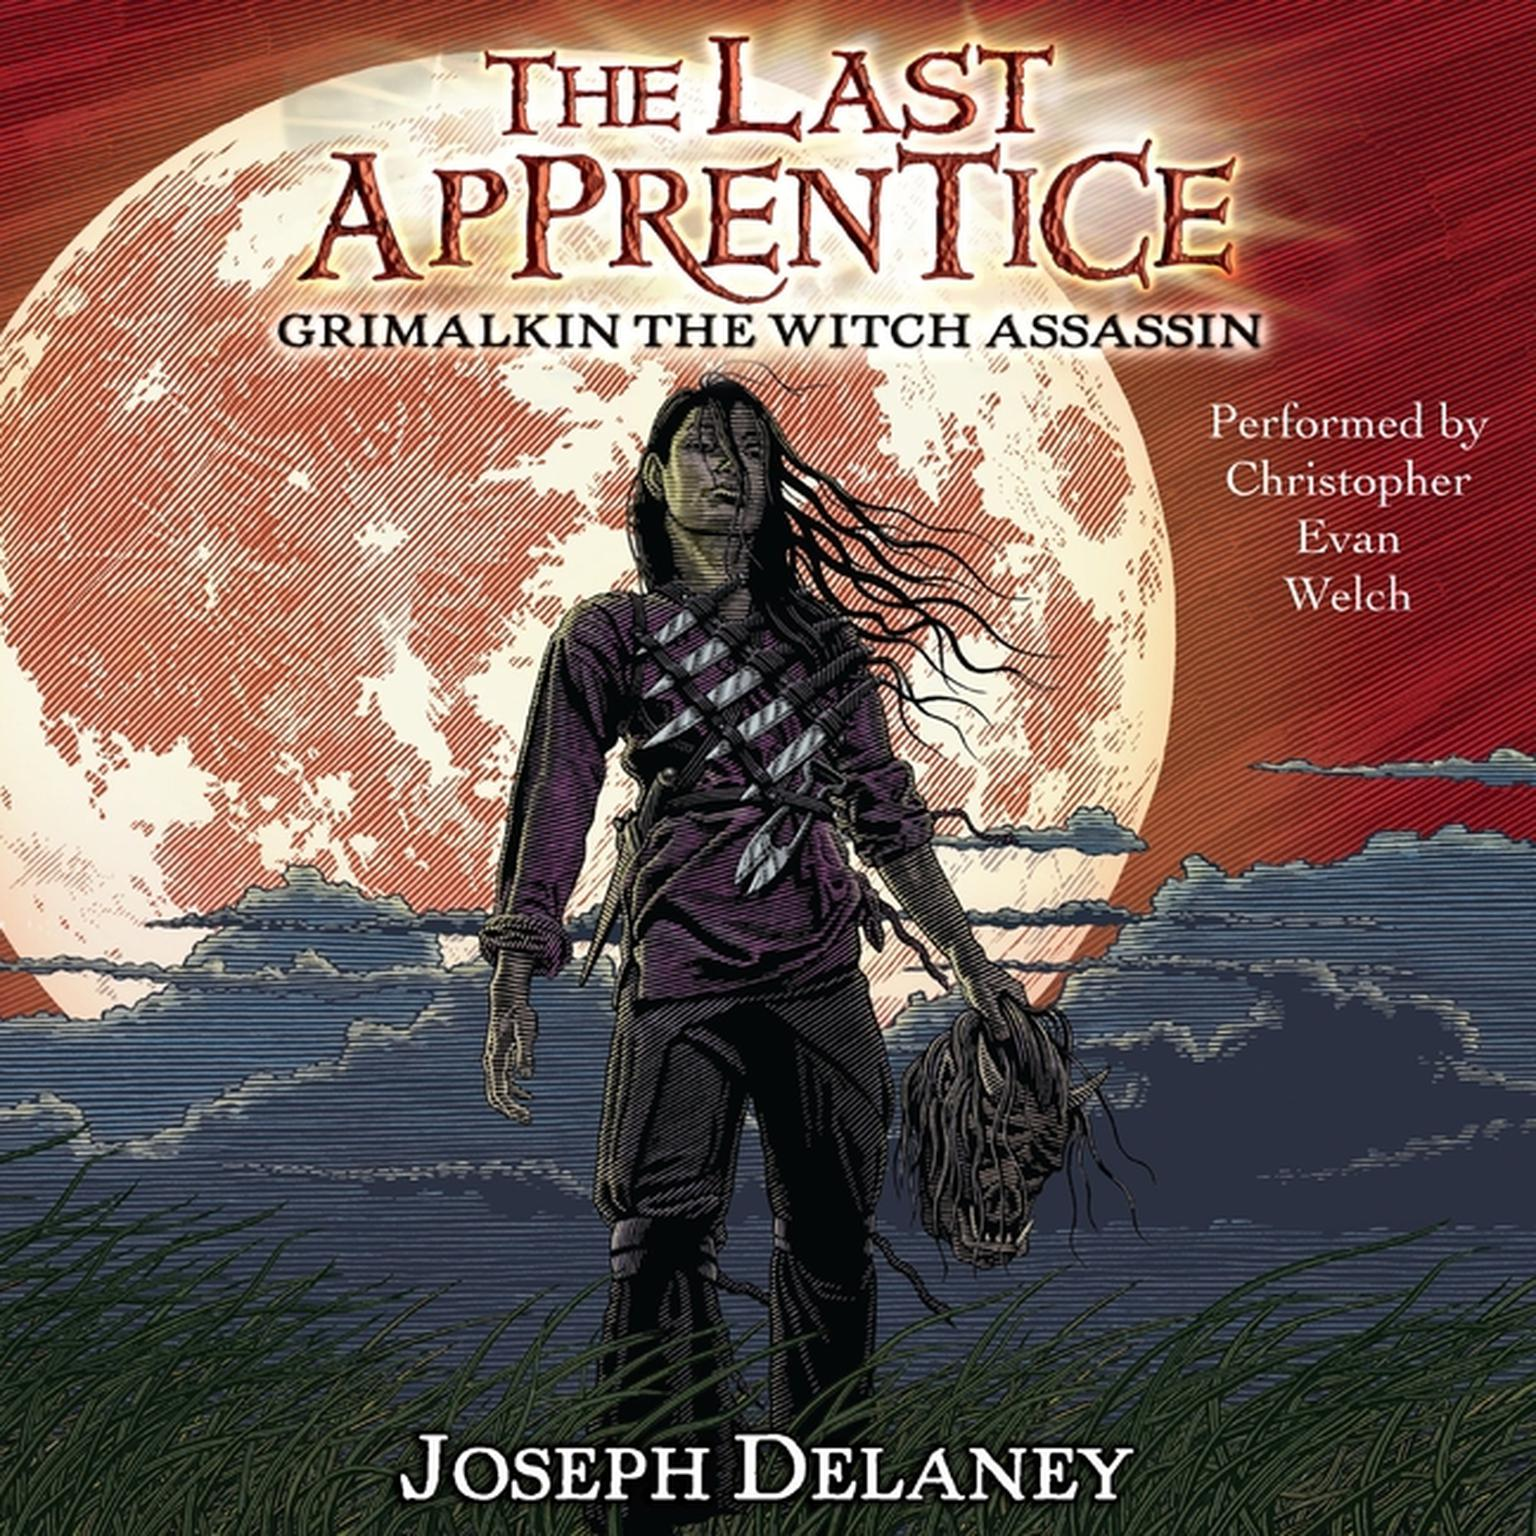 Printable The Last Apprentice: Grimalkin the Witch Assassin (Book 9) Audiobook Cover Art